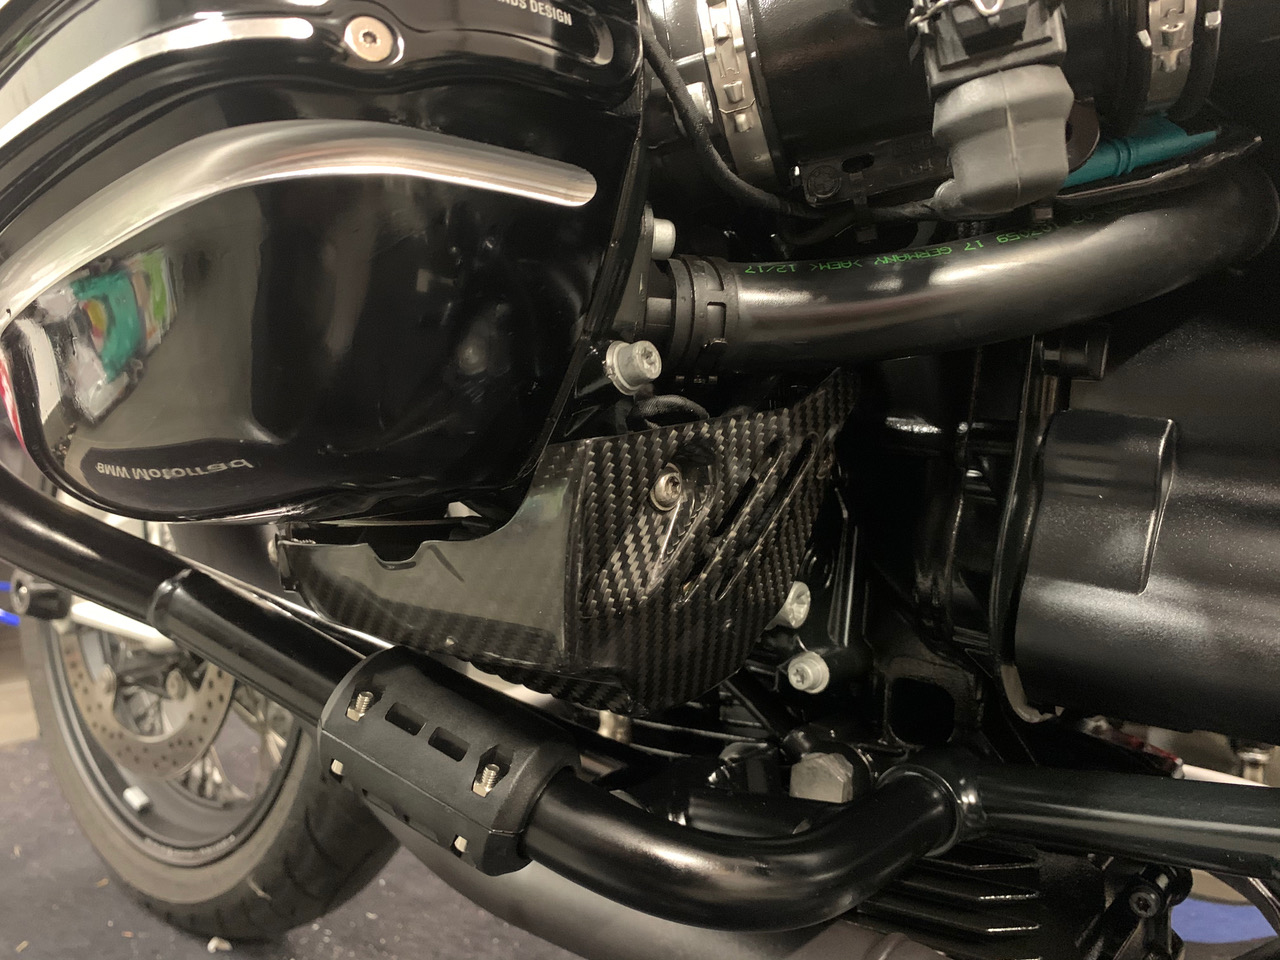 bmw-r-nine-t-carbon-fiber-parts-2.jpg